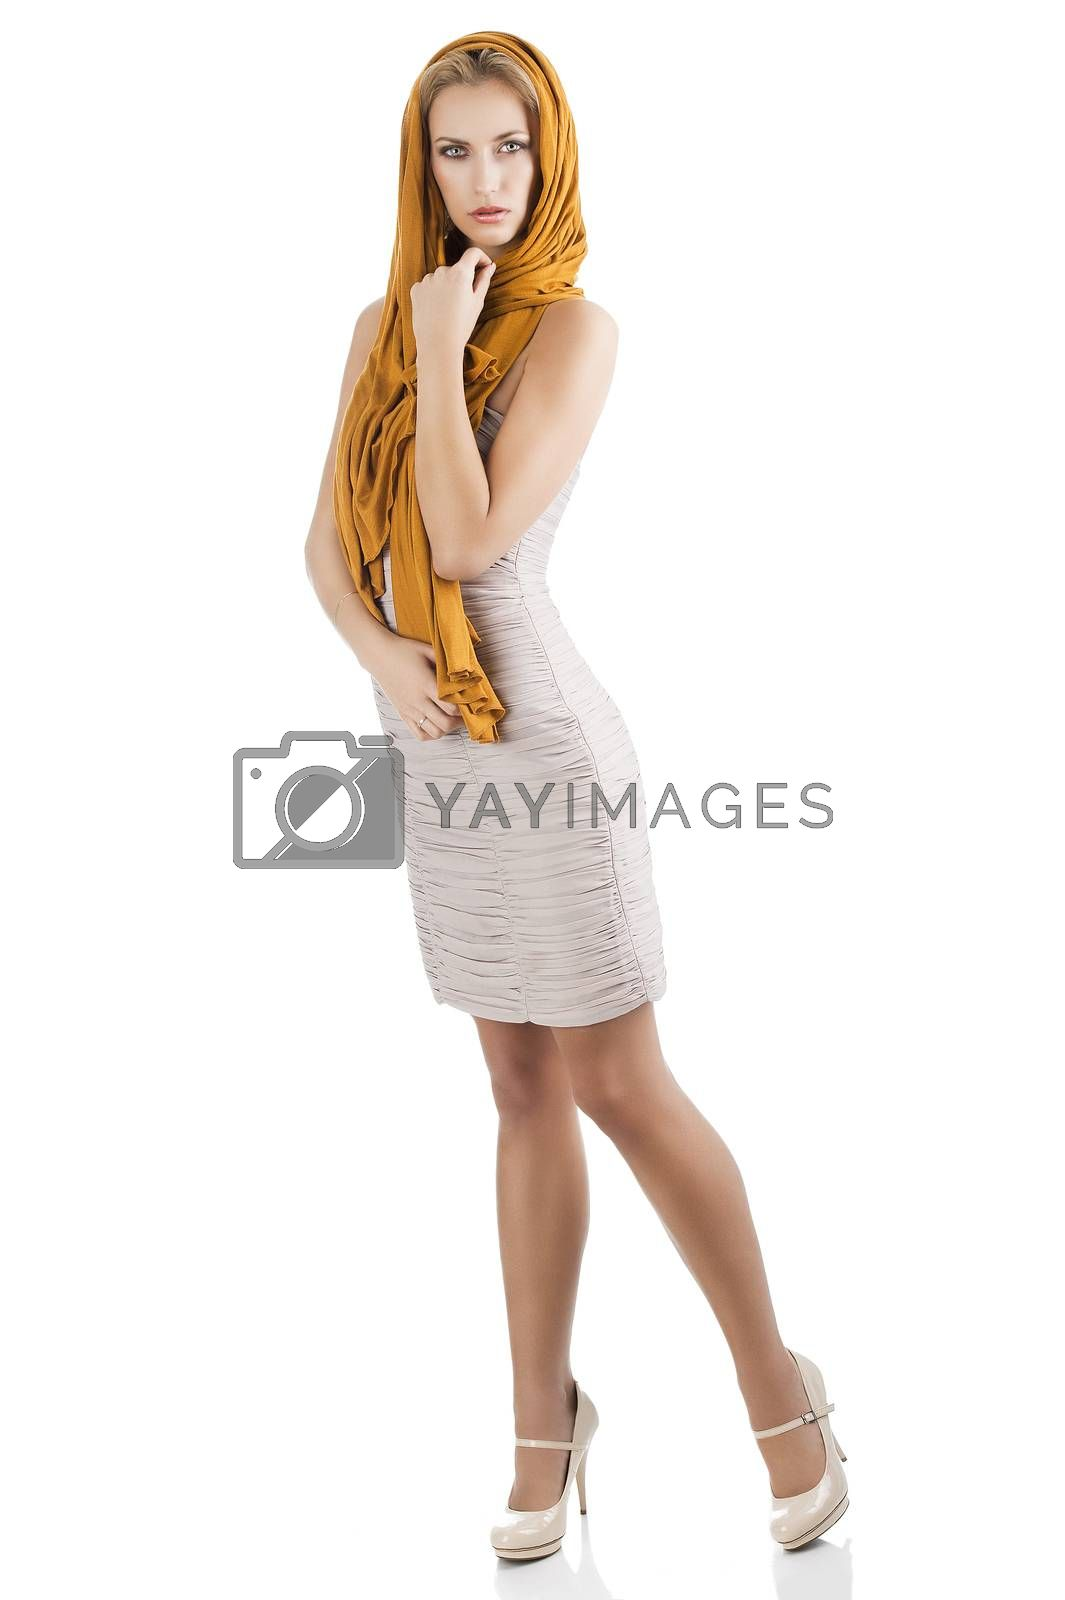 Royalty free image of blond girl in elegant dress, she is turned of three quarters  by fotoCD